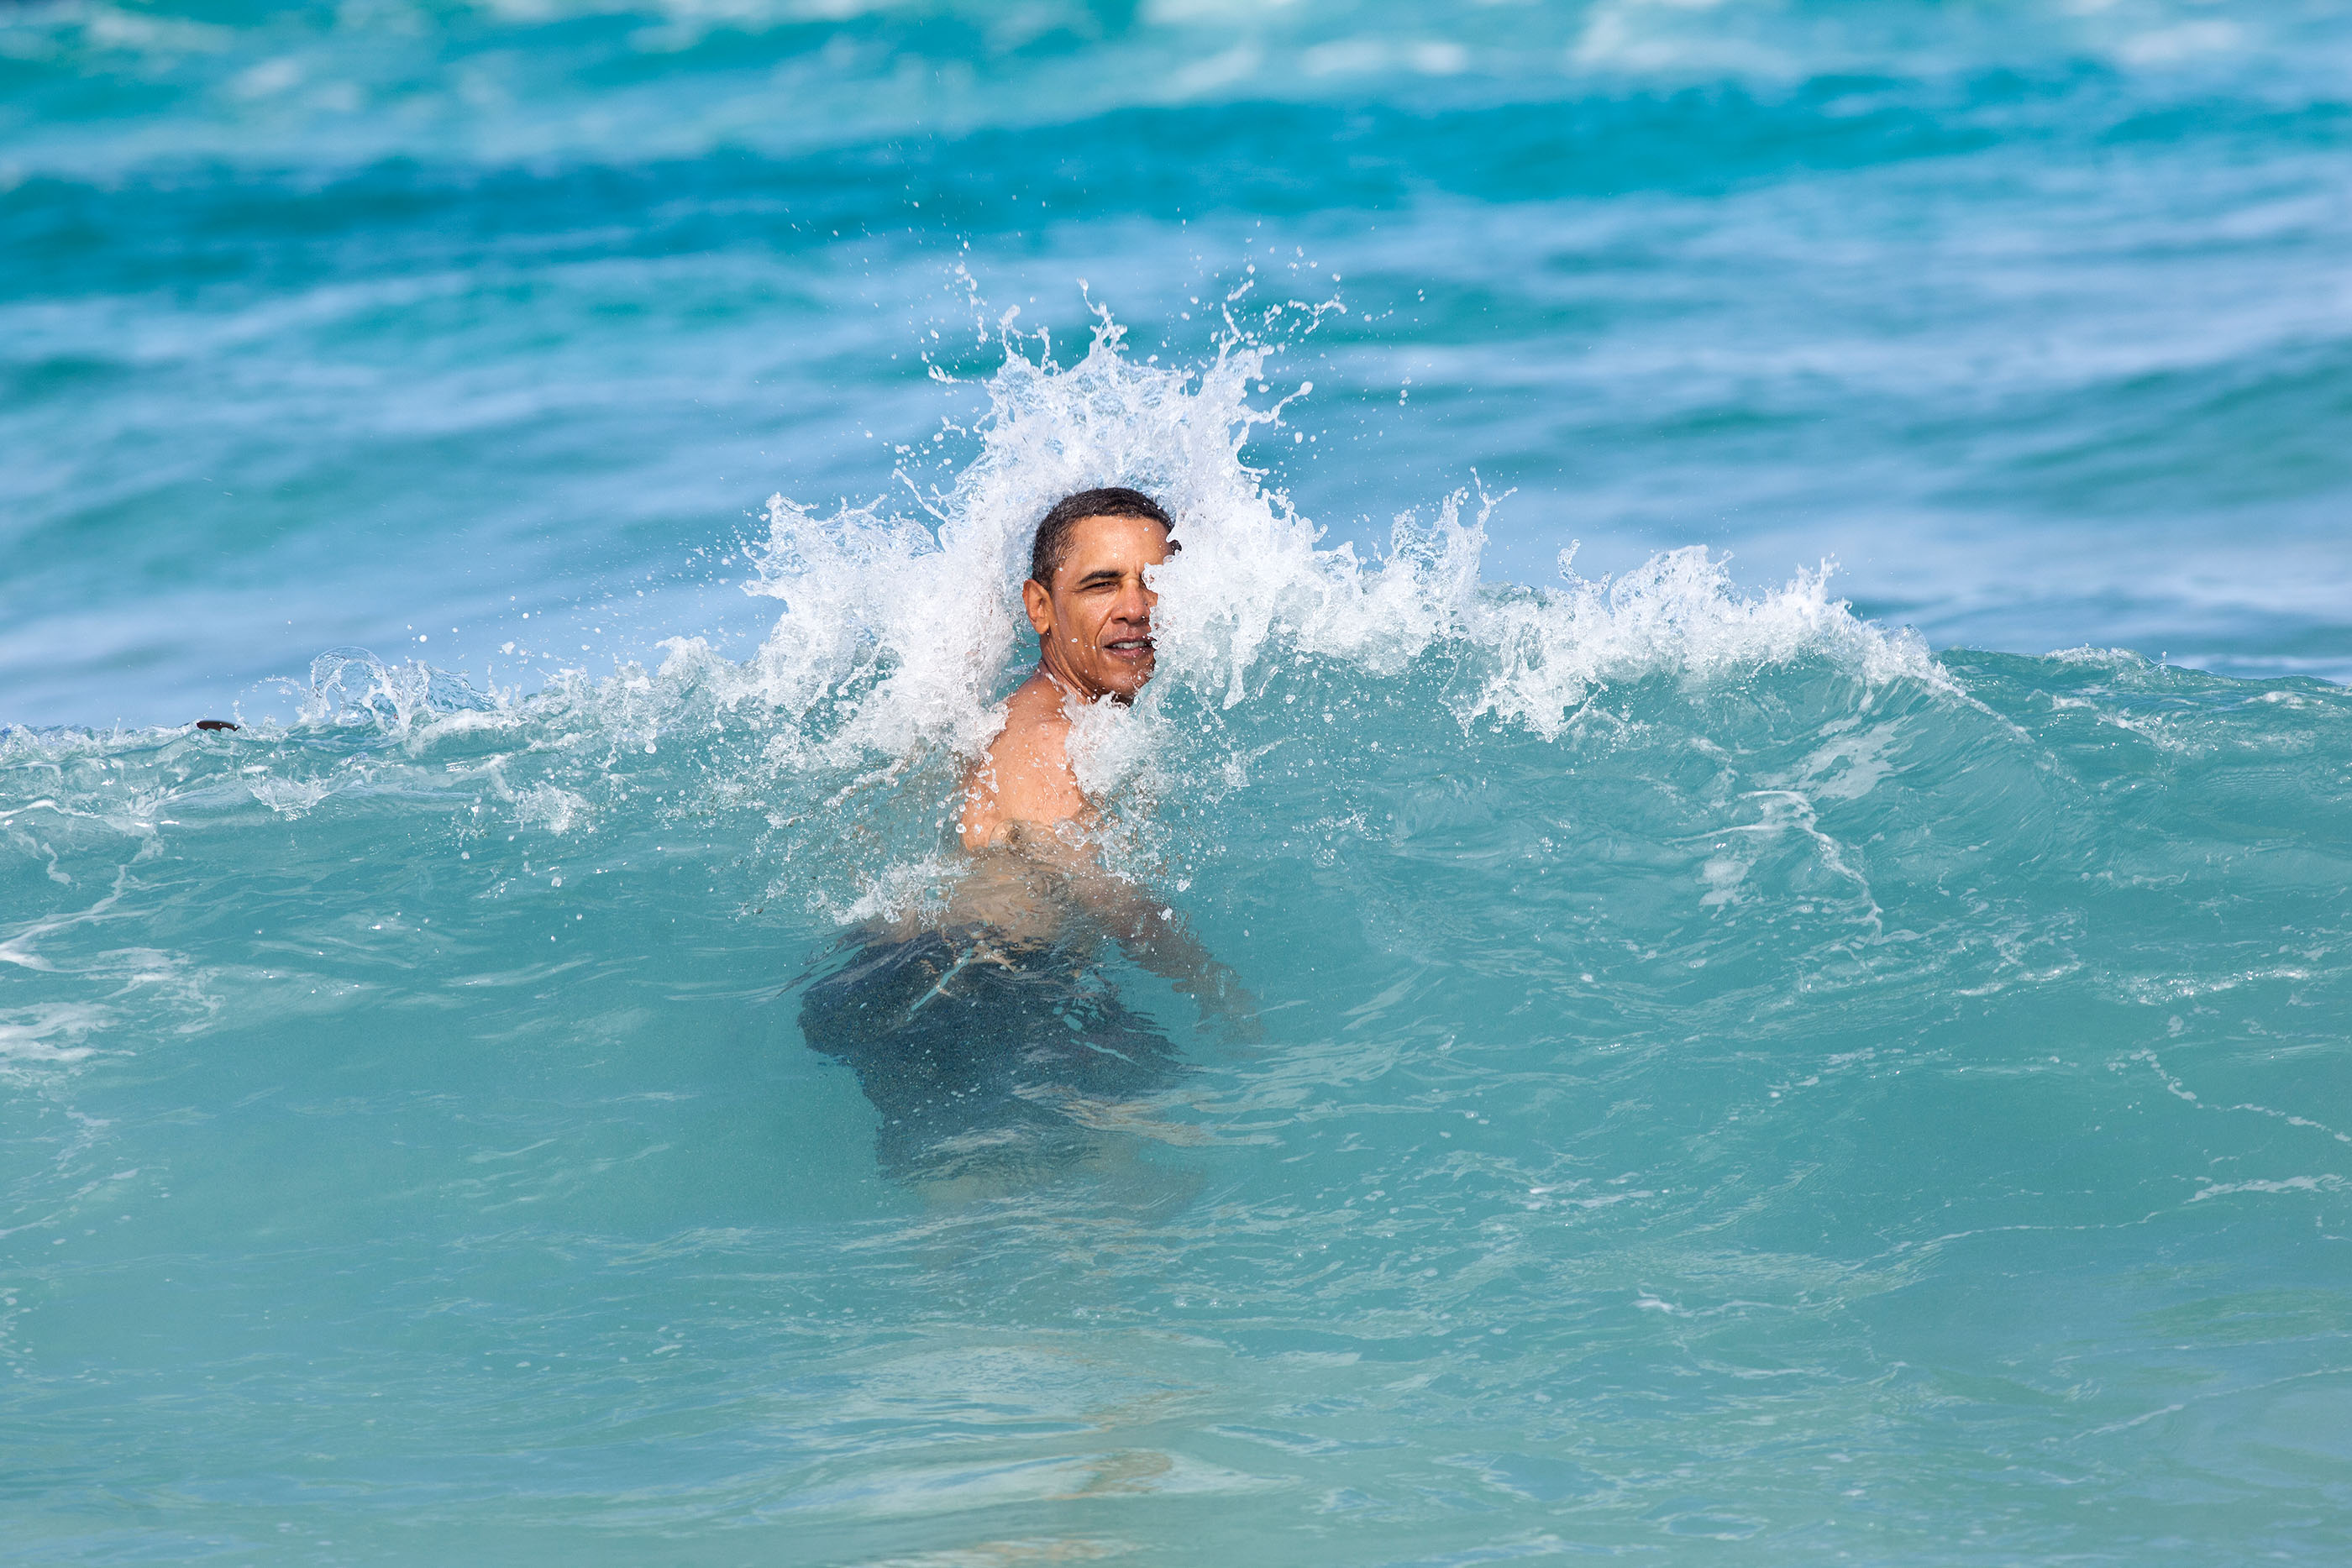 Hawaii, Jan. 1, 2012. Swimming at Pyramid Rock Beach in Kaneohe Bay. (Official White House Photo by Pete Souza)